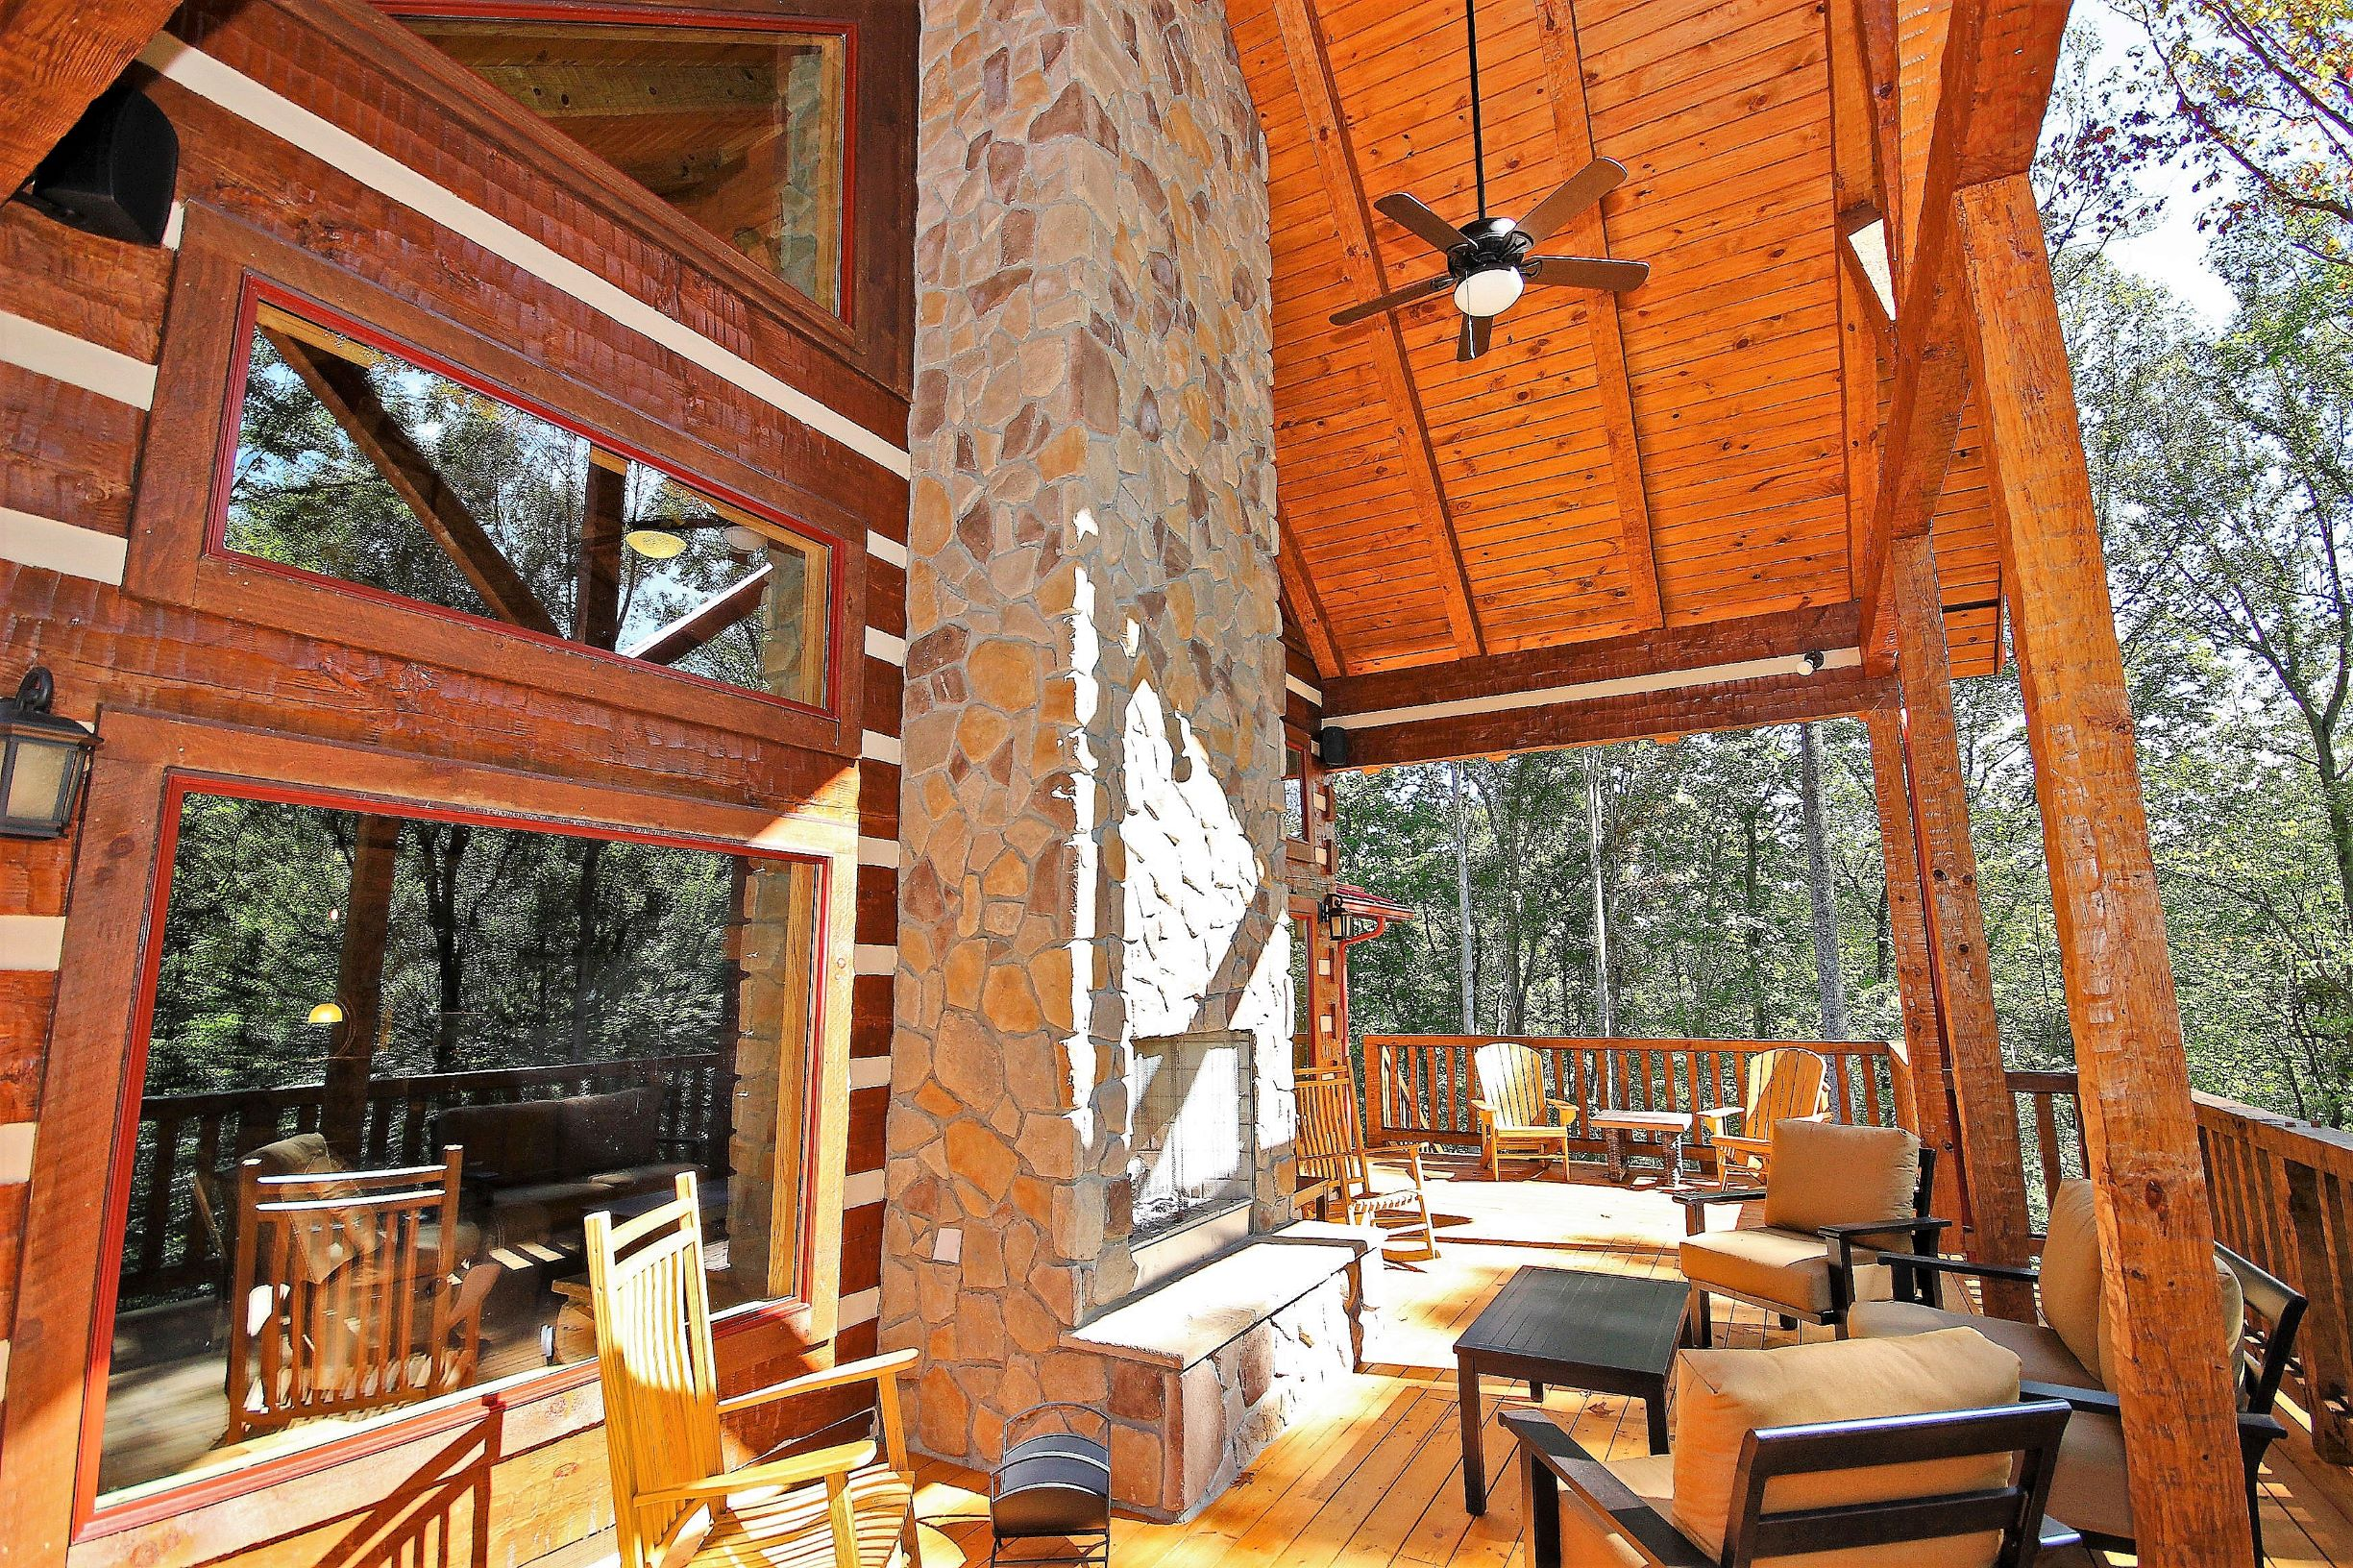 Covered Deck - Portion of expansive covered decking showing exterior wood burning fireplace.